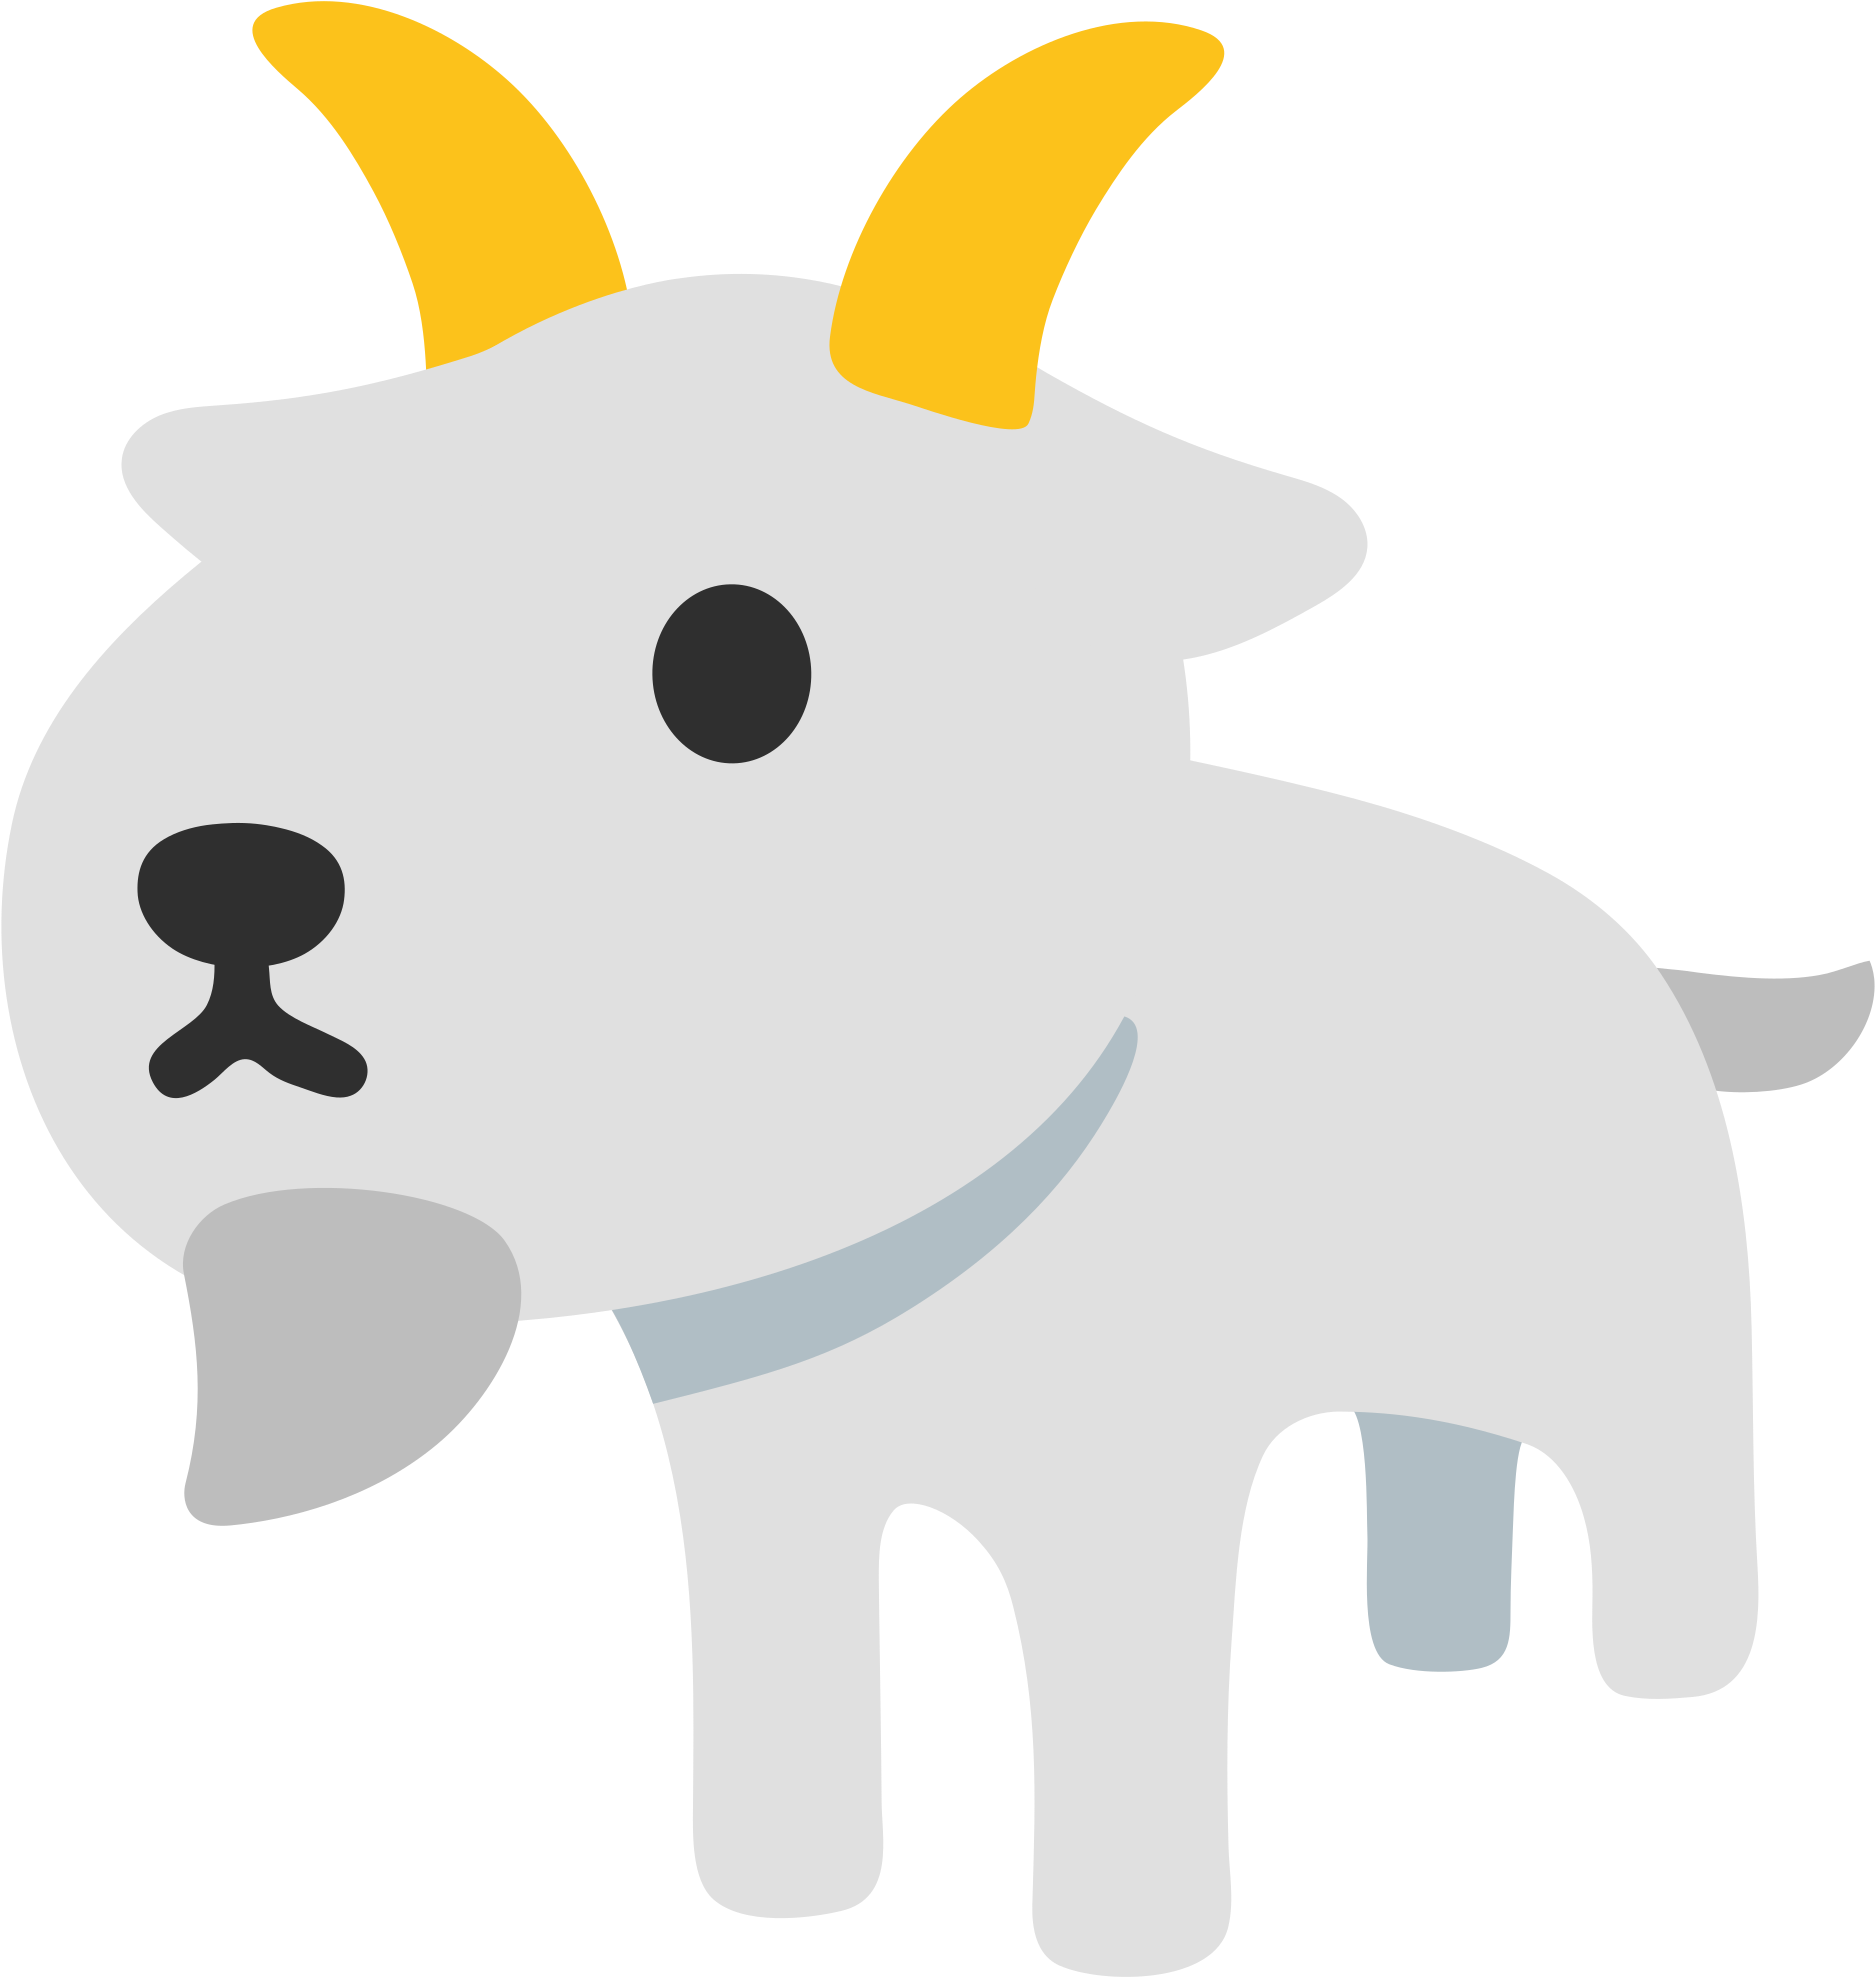 Goat emoji clipart picture royalty free stock HD File - Emoji U1f410 - Svg - Transparent Goat Emoji Png ... picture royalty free stock